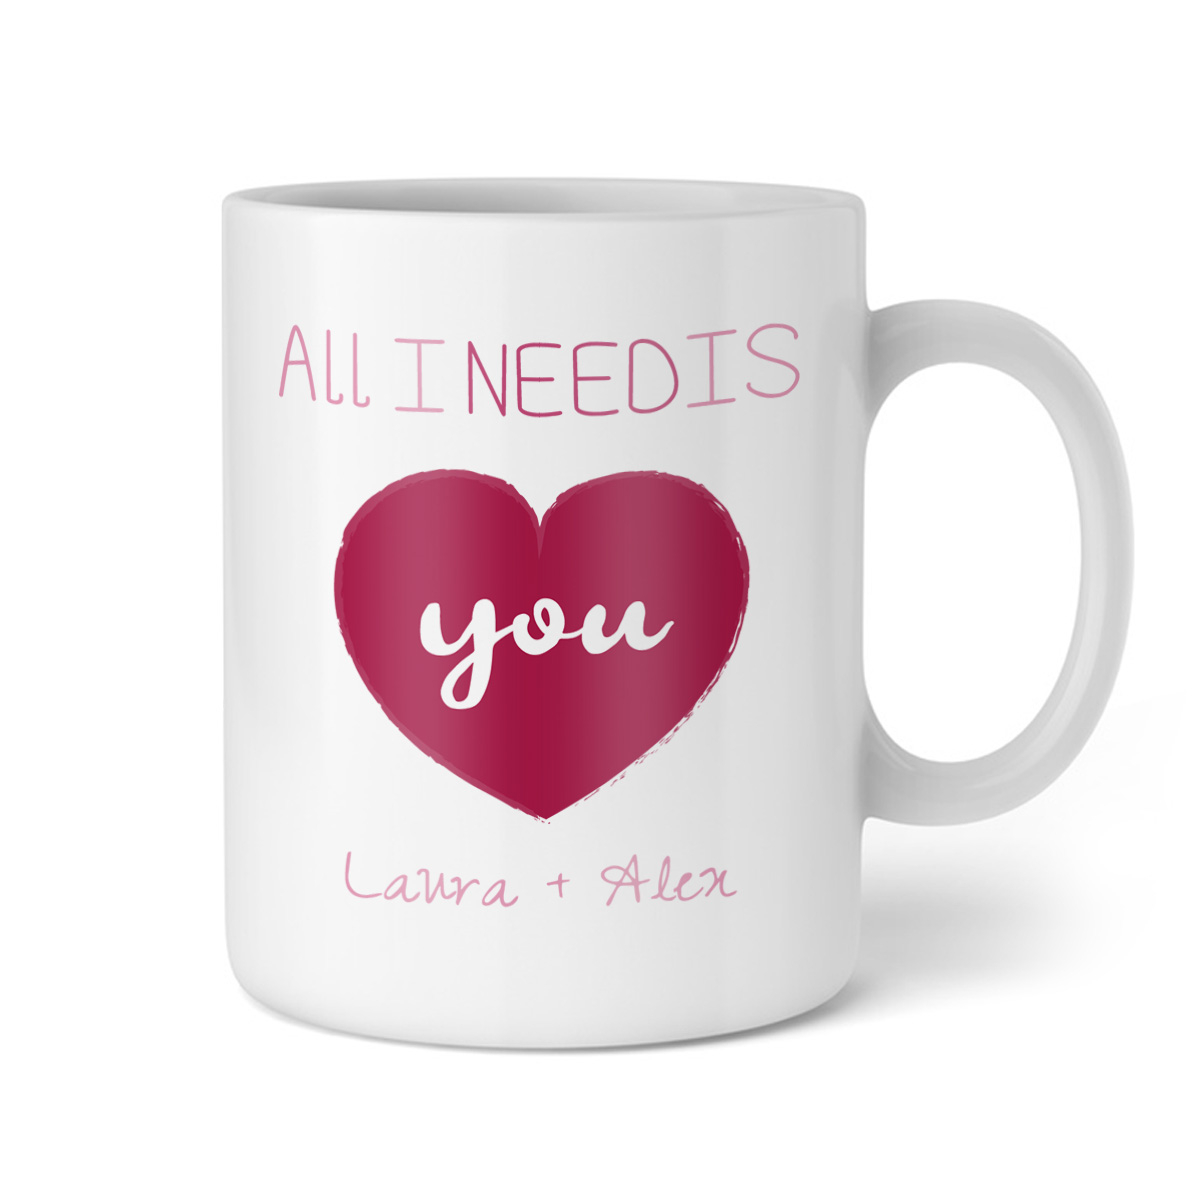 Personalisierbare Tasse All I Need Is You